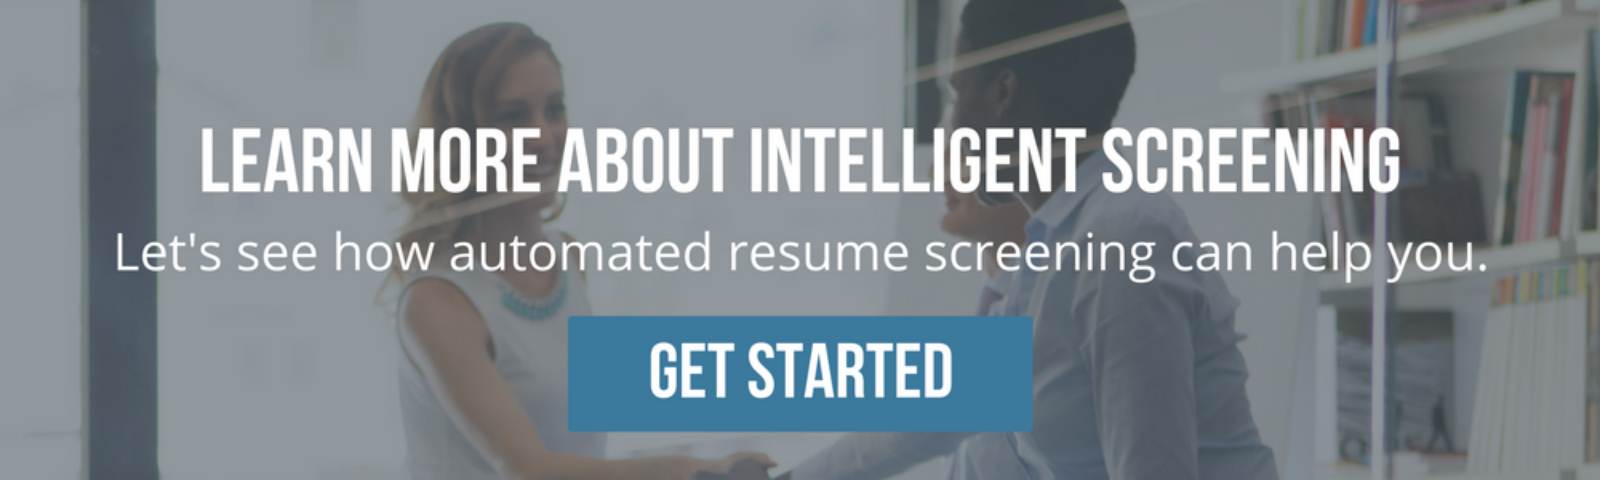 talent acquisition innovation resume screening using ai - Automated Resume Screening